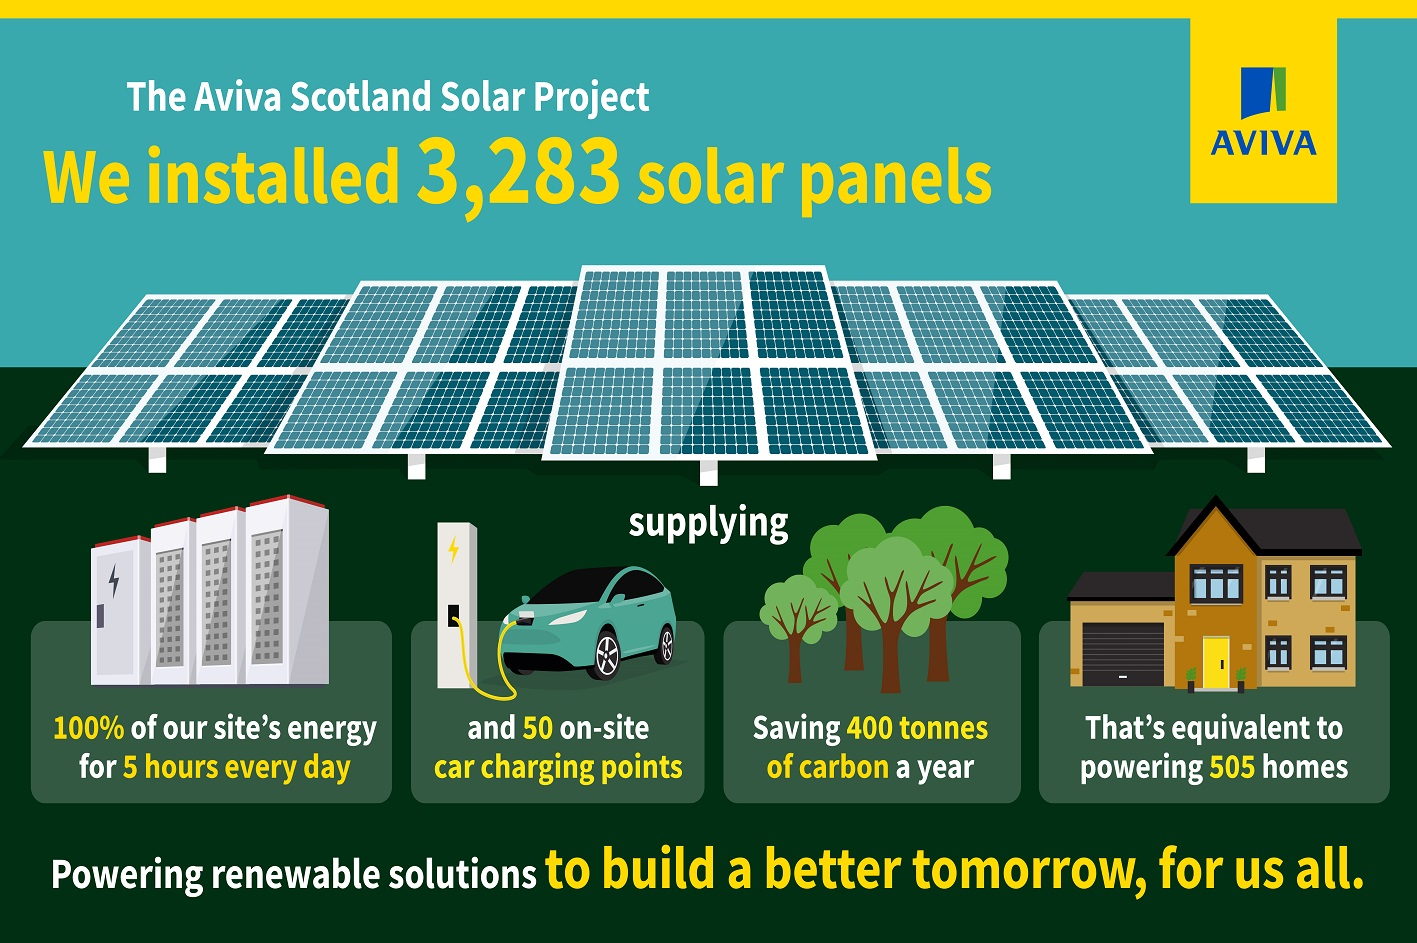 AVIVA OPENS ONE OF THE UK'S LARGEST SOLAR AND ENERGY STORAGE INITIATIVES AT ITS PERTH SITE IN SCOTLAND